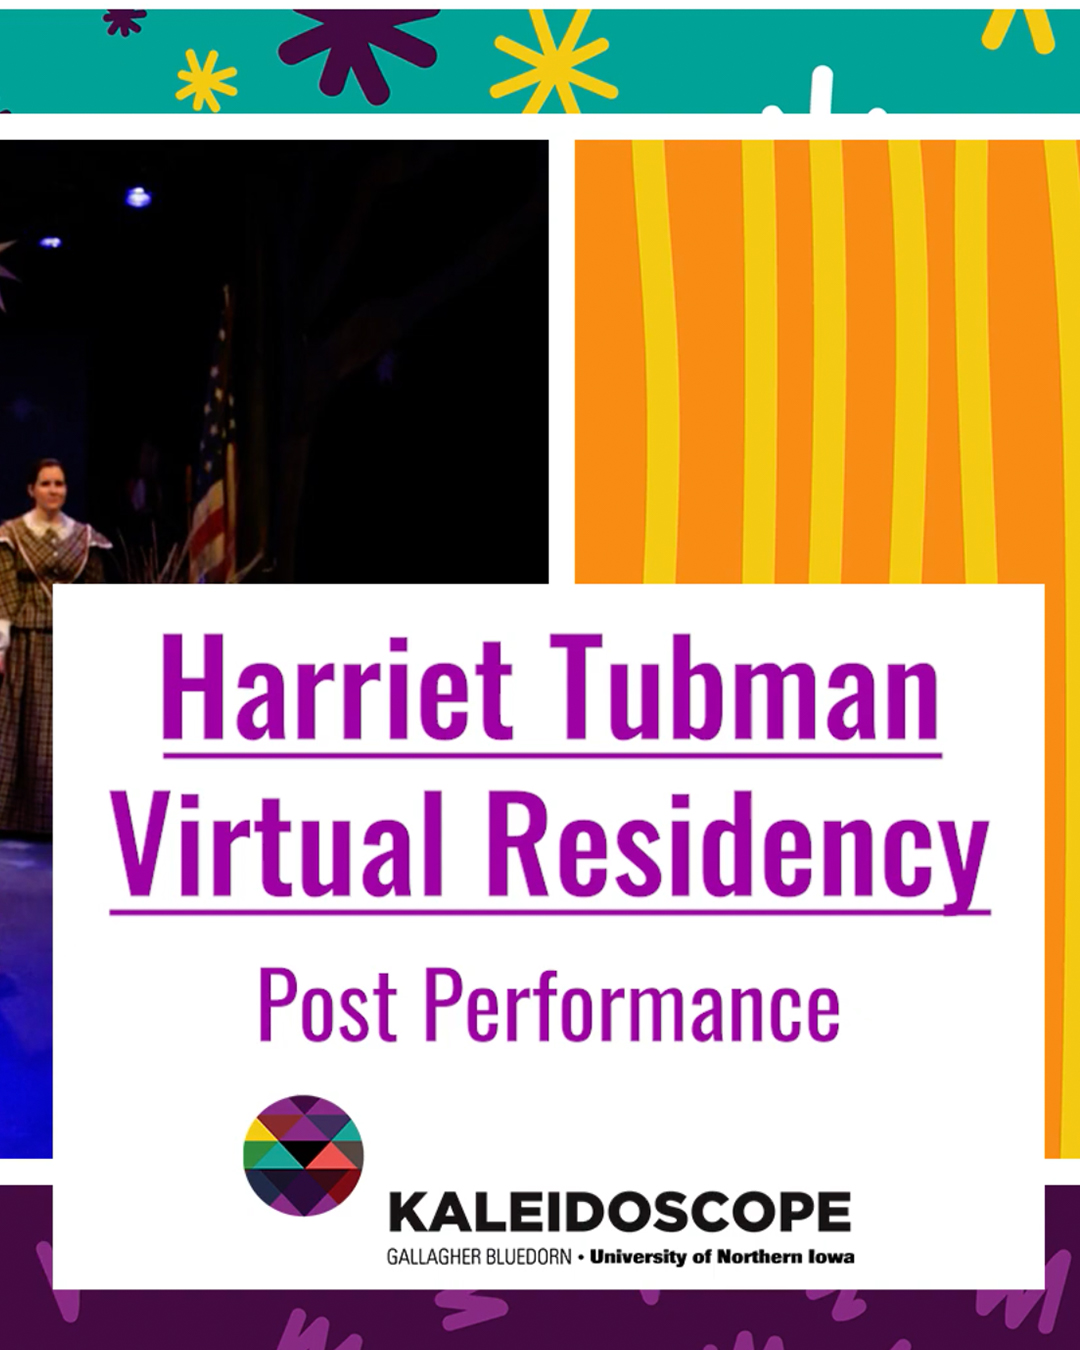 Harriet Tubman Virtual Residency